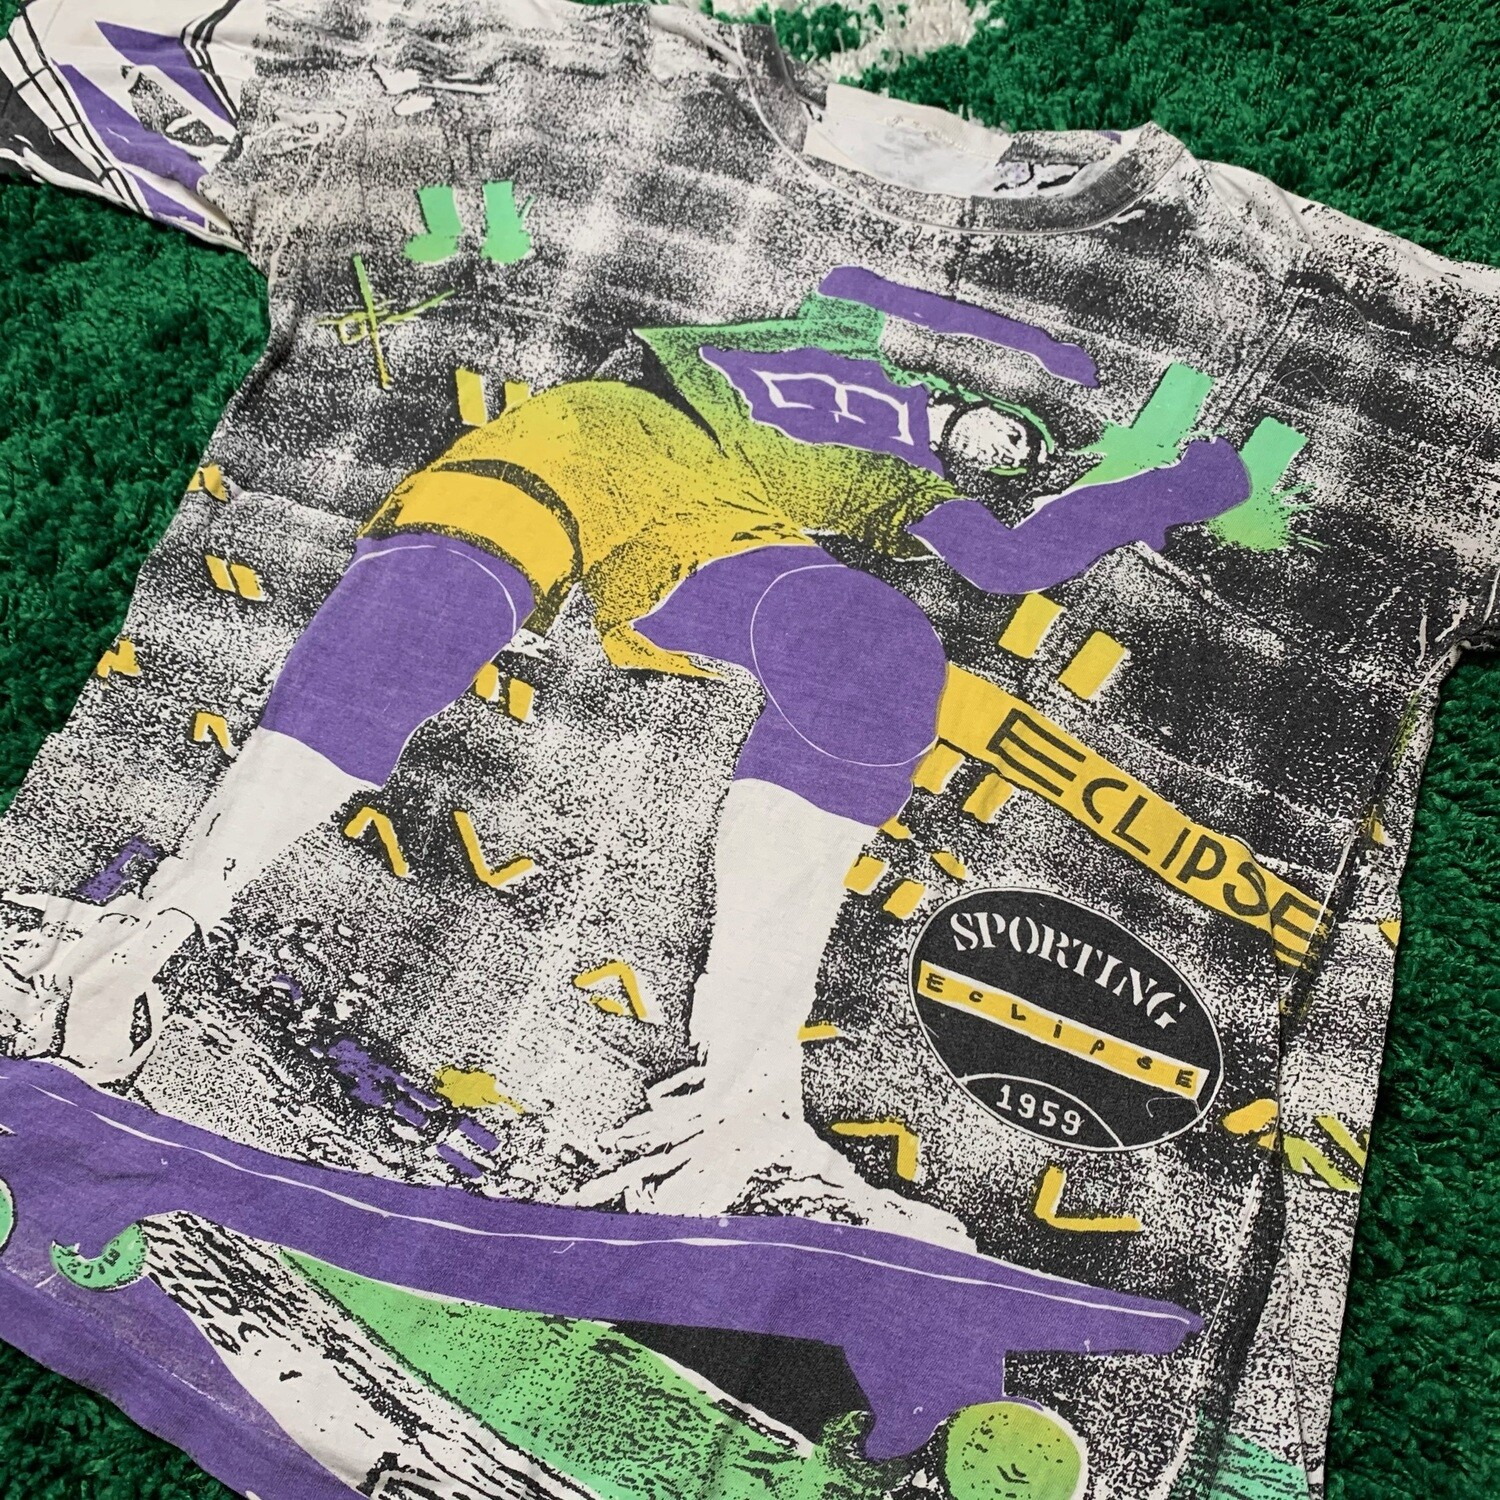 Sporting Eclipse All over Print Skate Tee Size XL